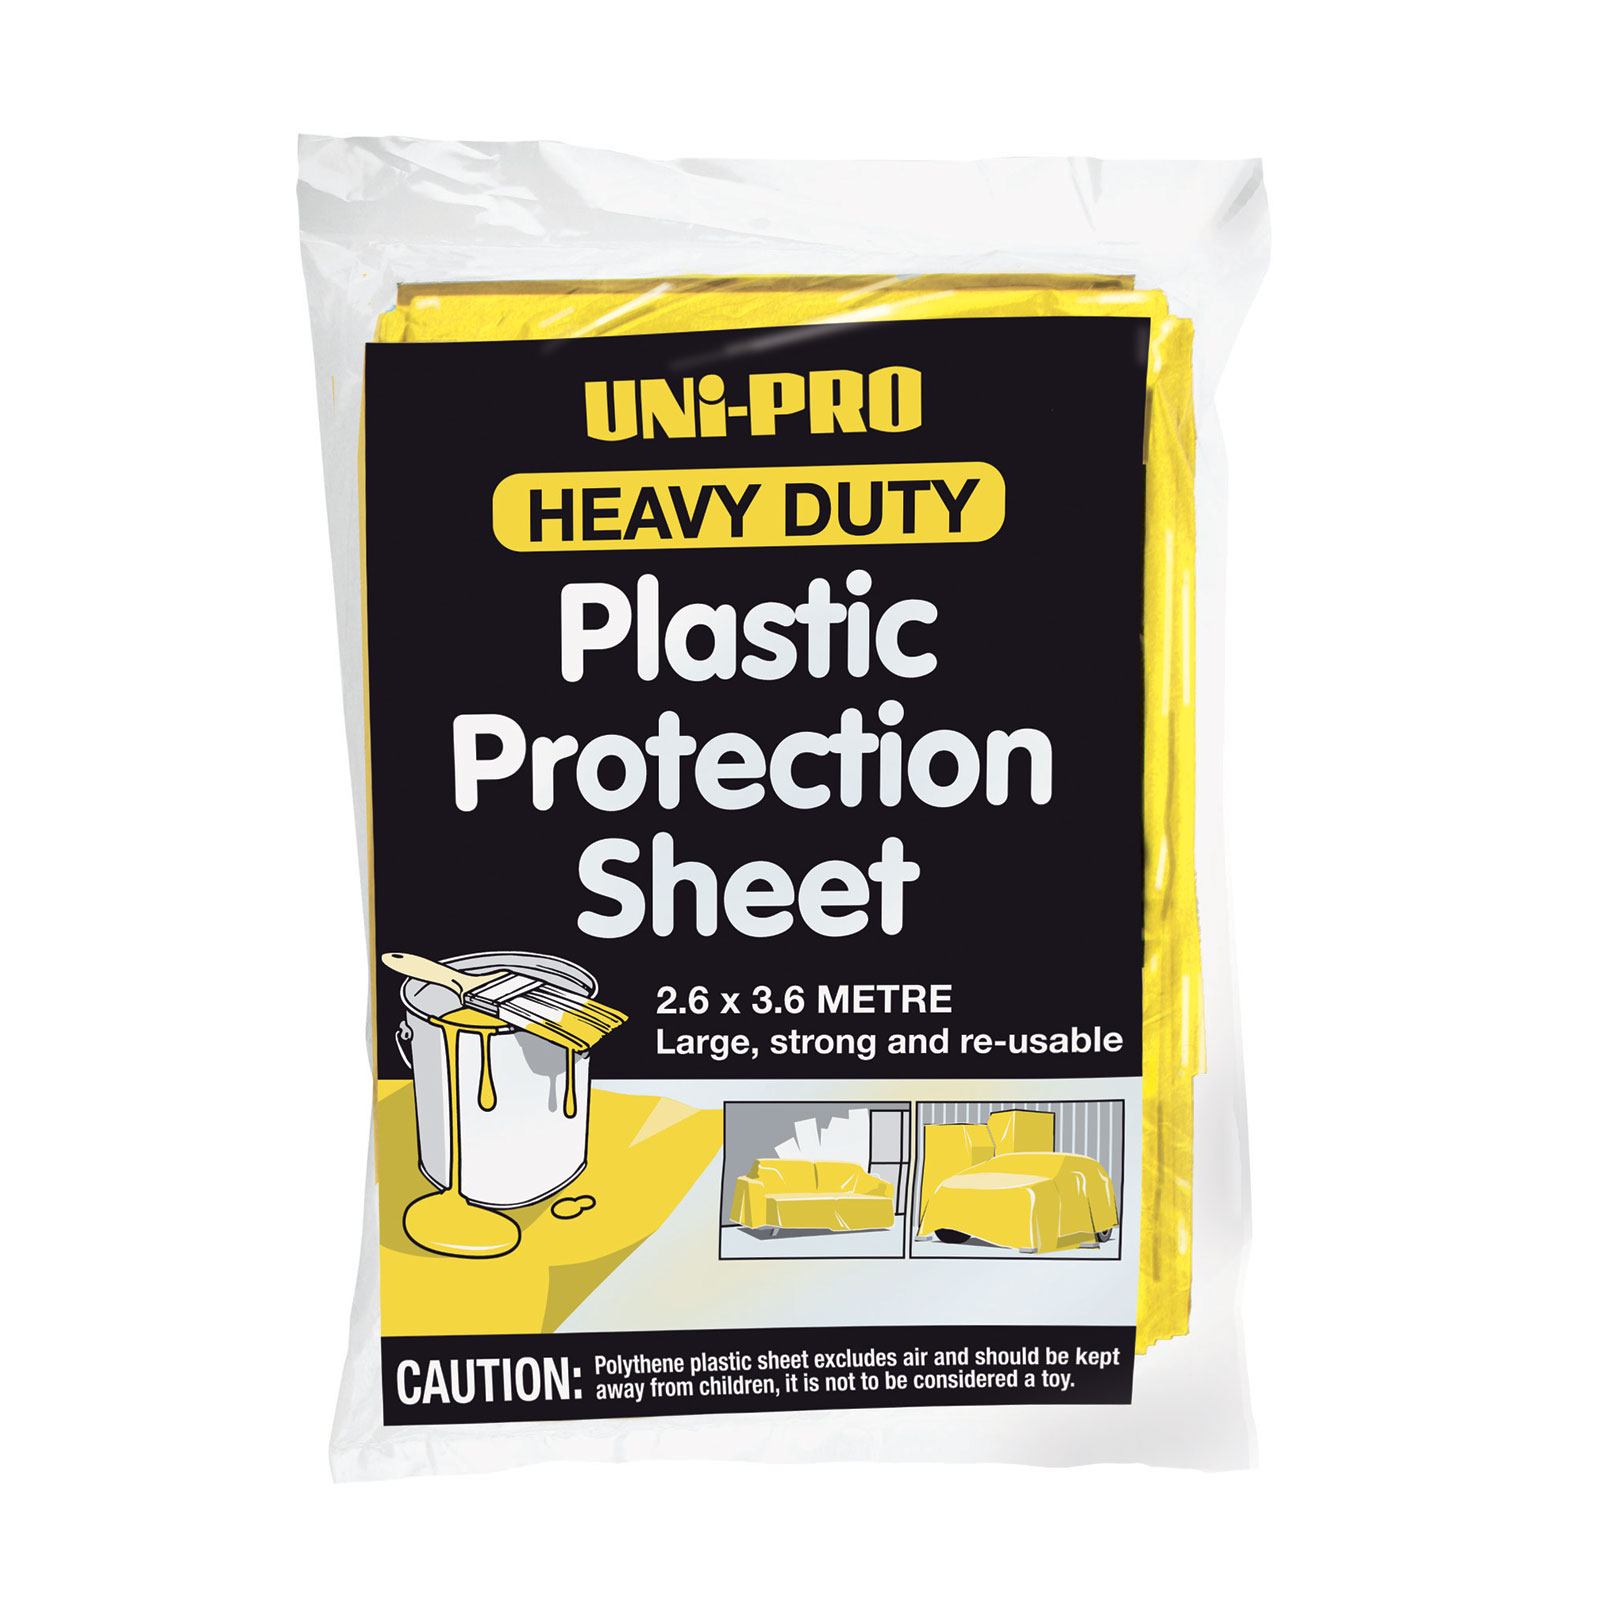 UNi-PRO Plastic Protection Sheet H/Duty Blue